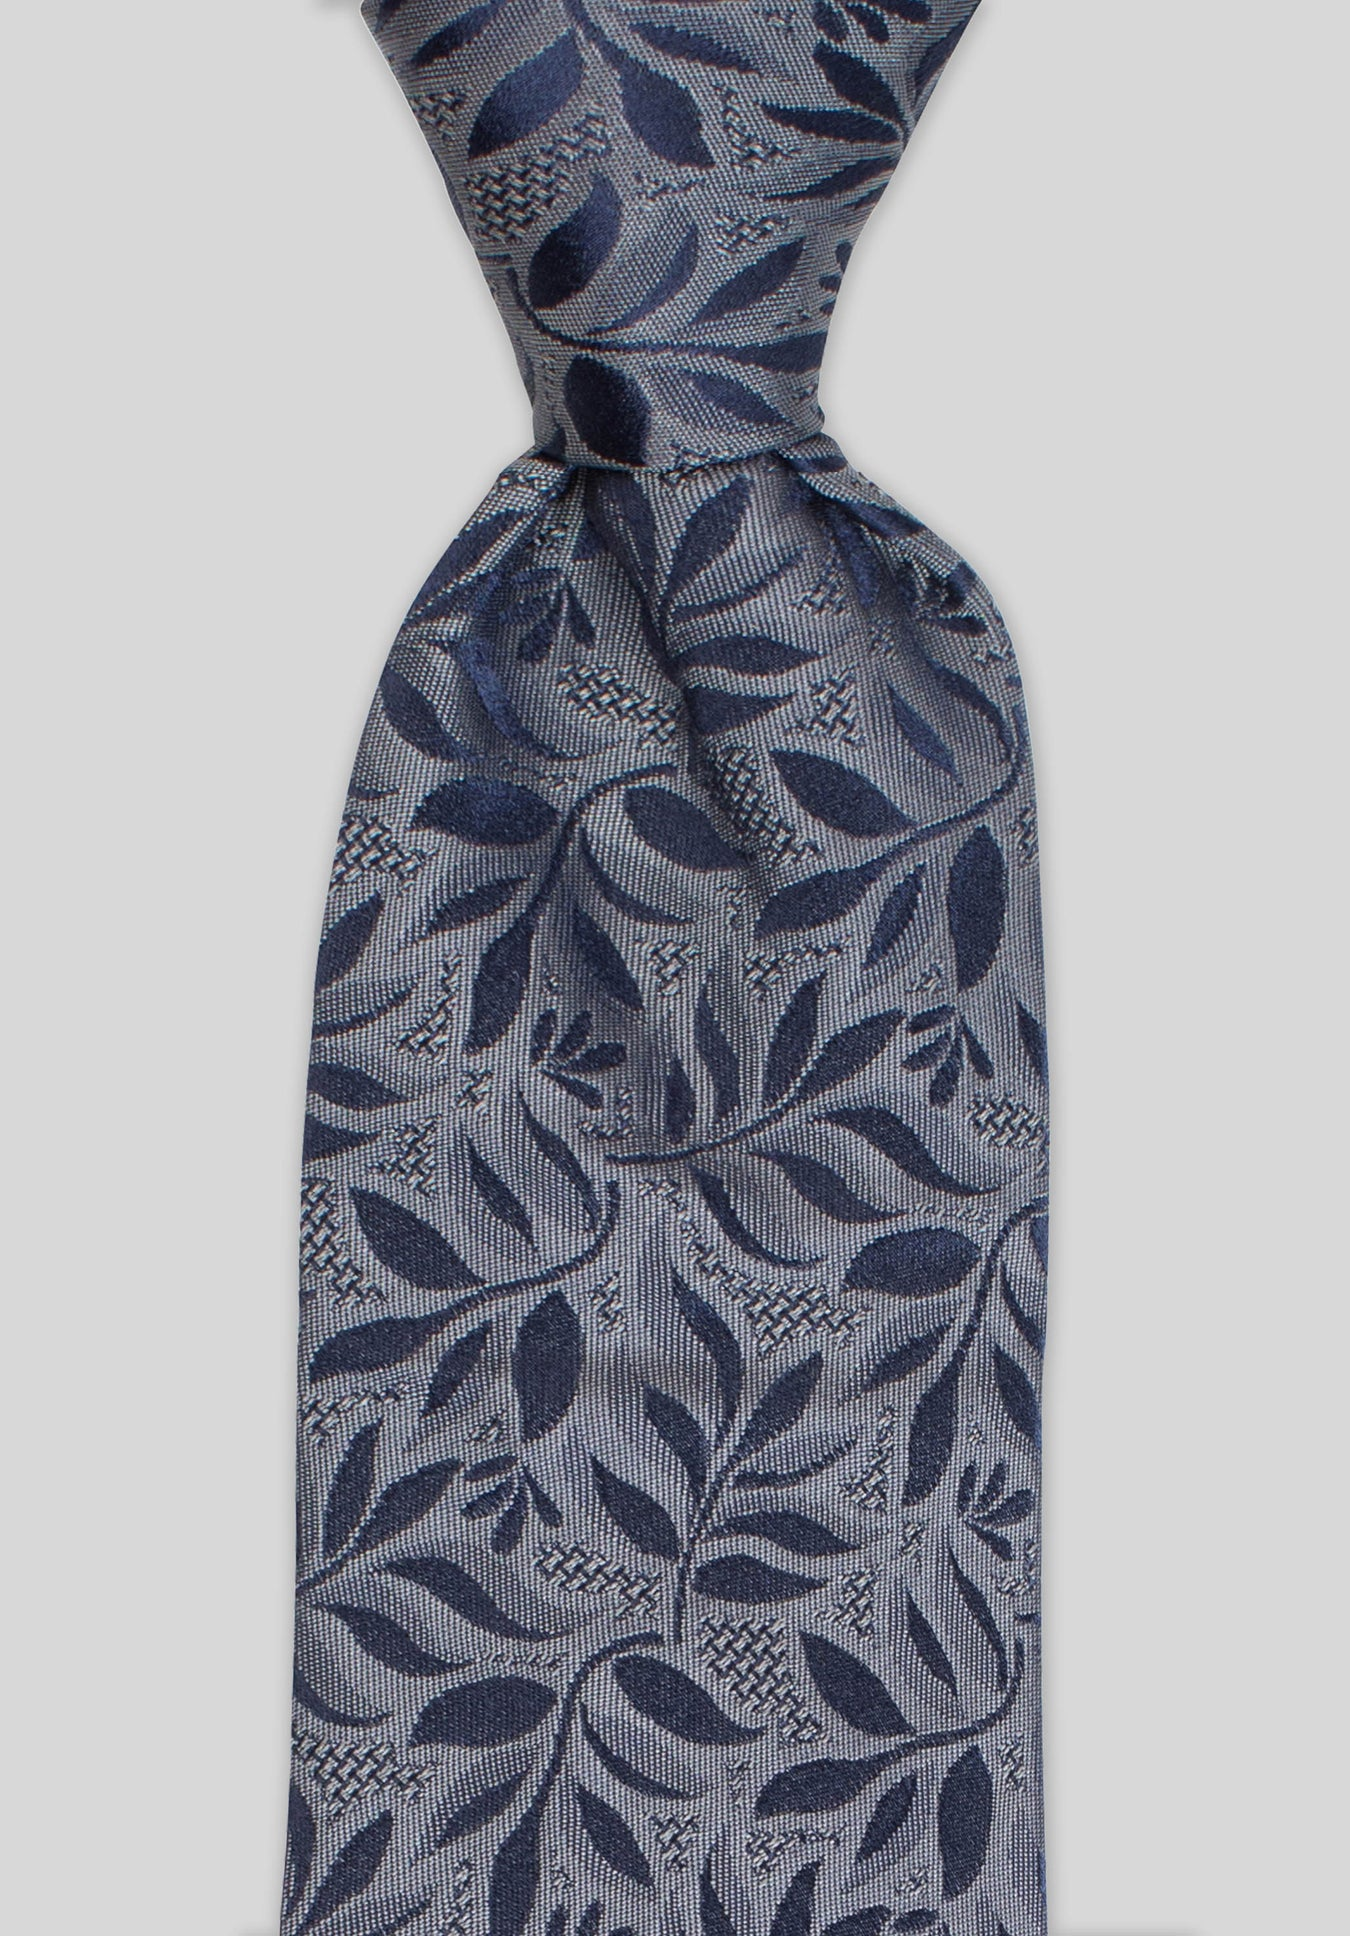 WILLOW 7.5CM TIE - Navy